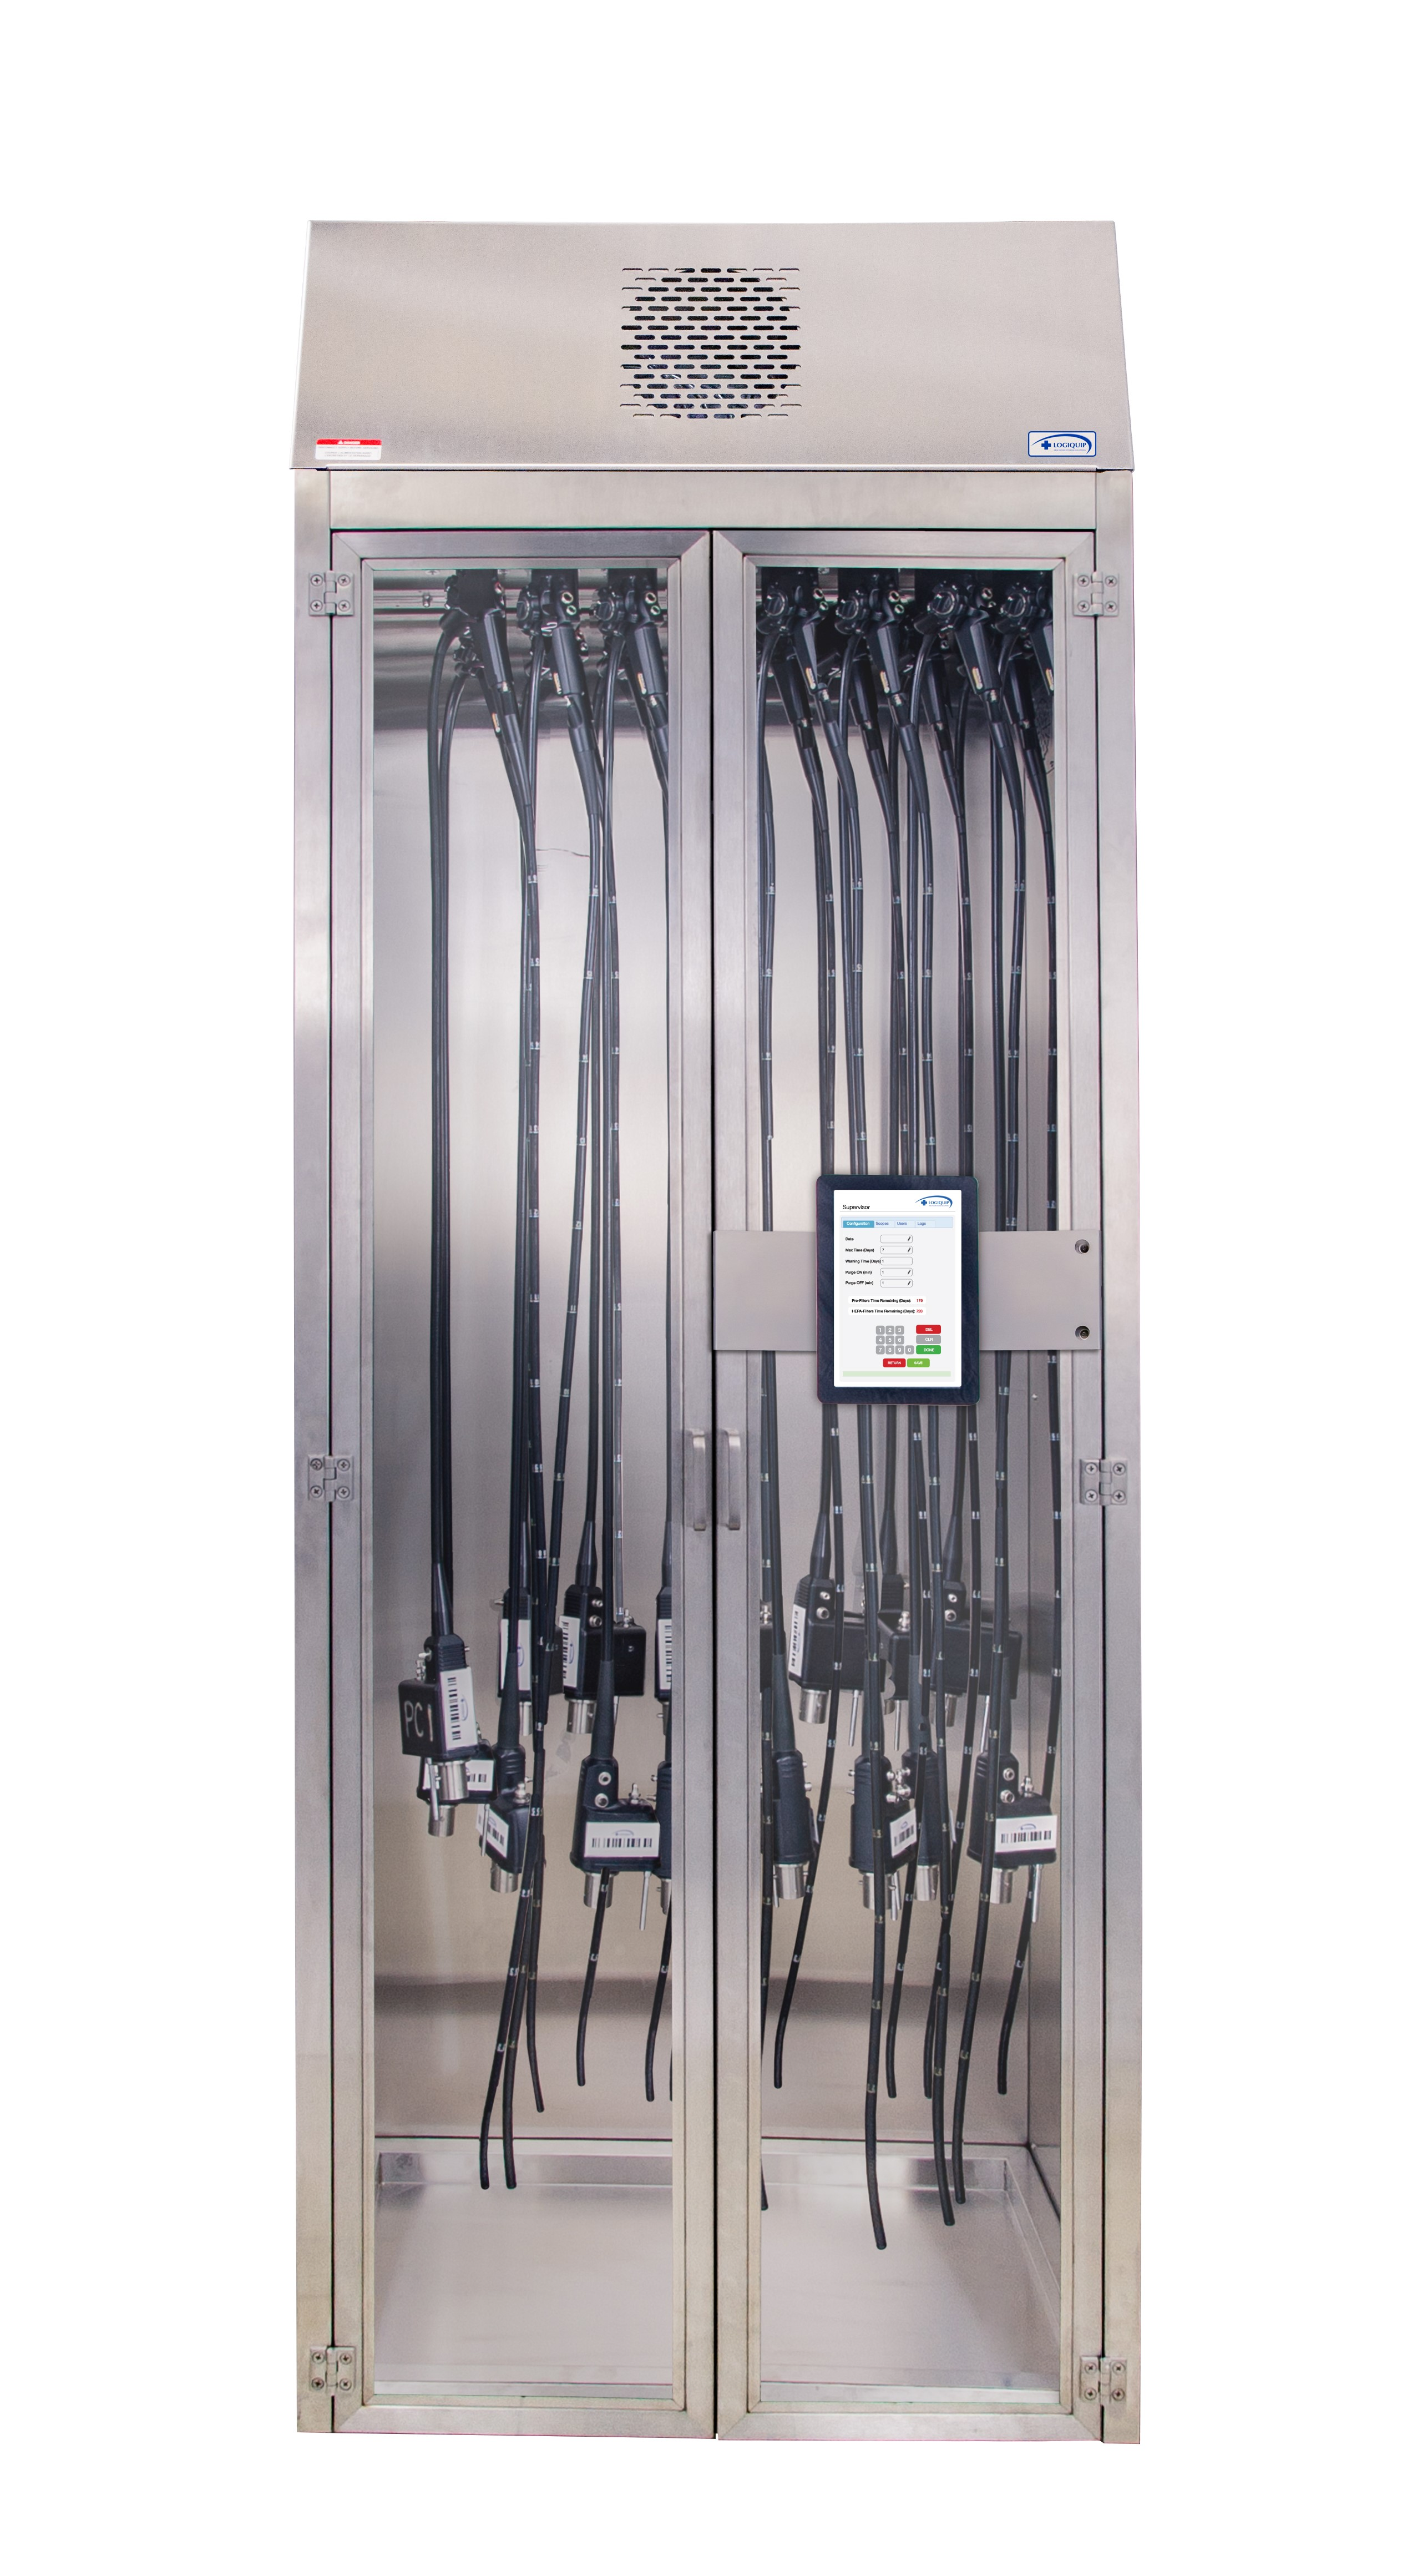 Endoscopy Room Design: Endoscopy Scope Storage Cabinets